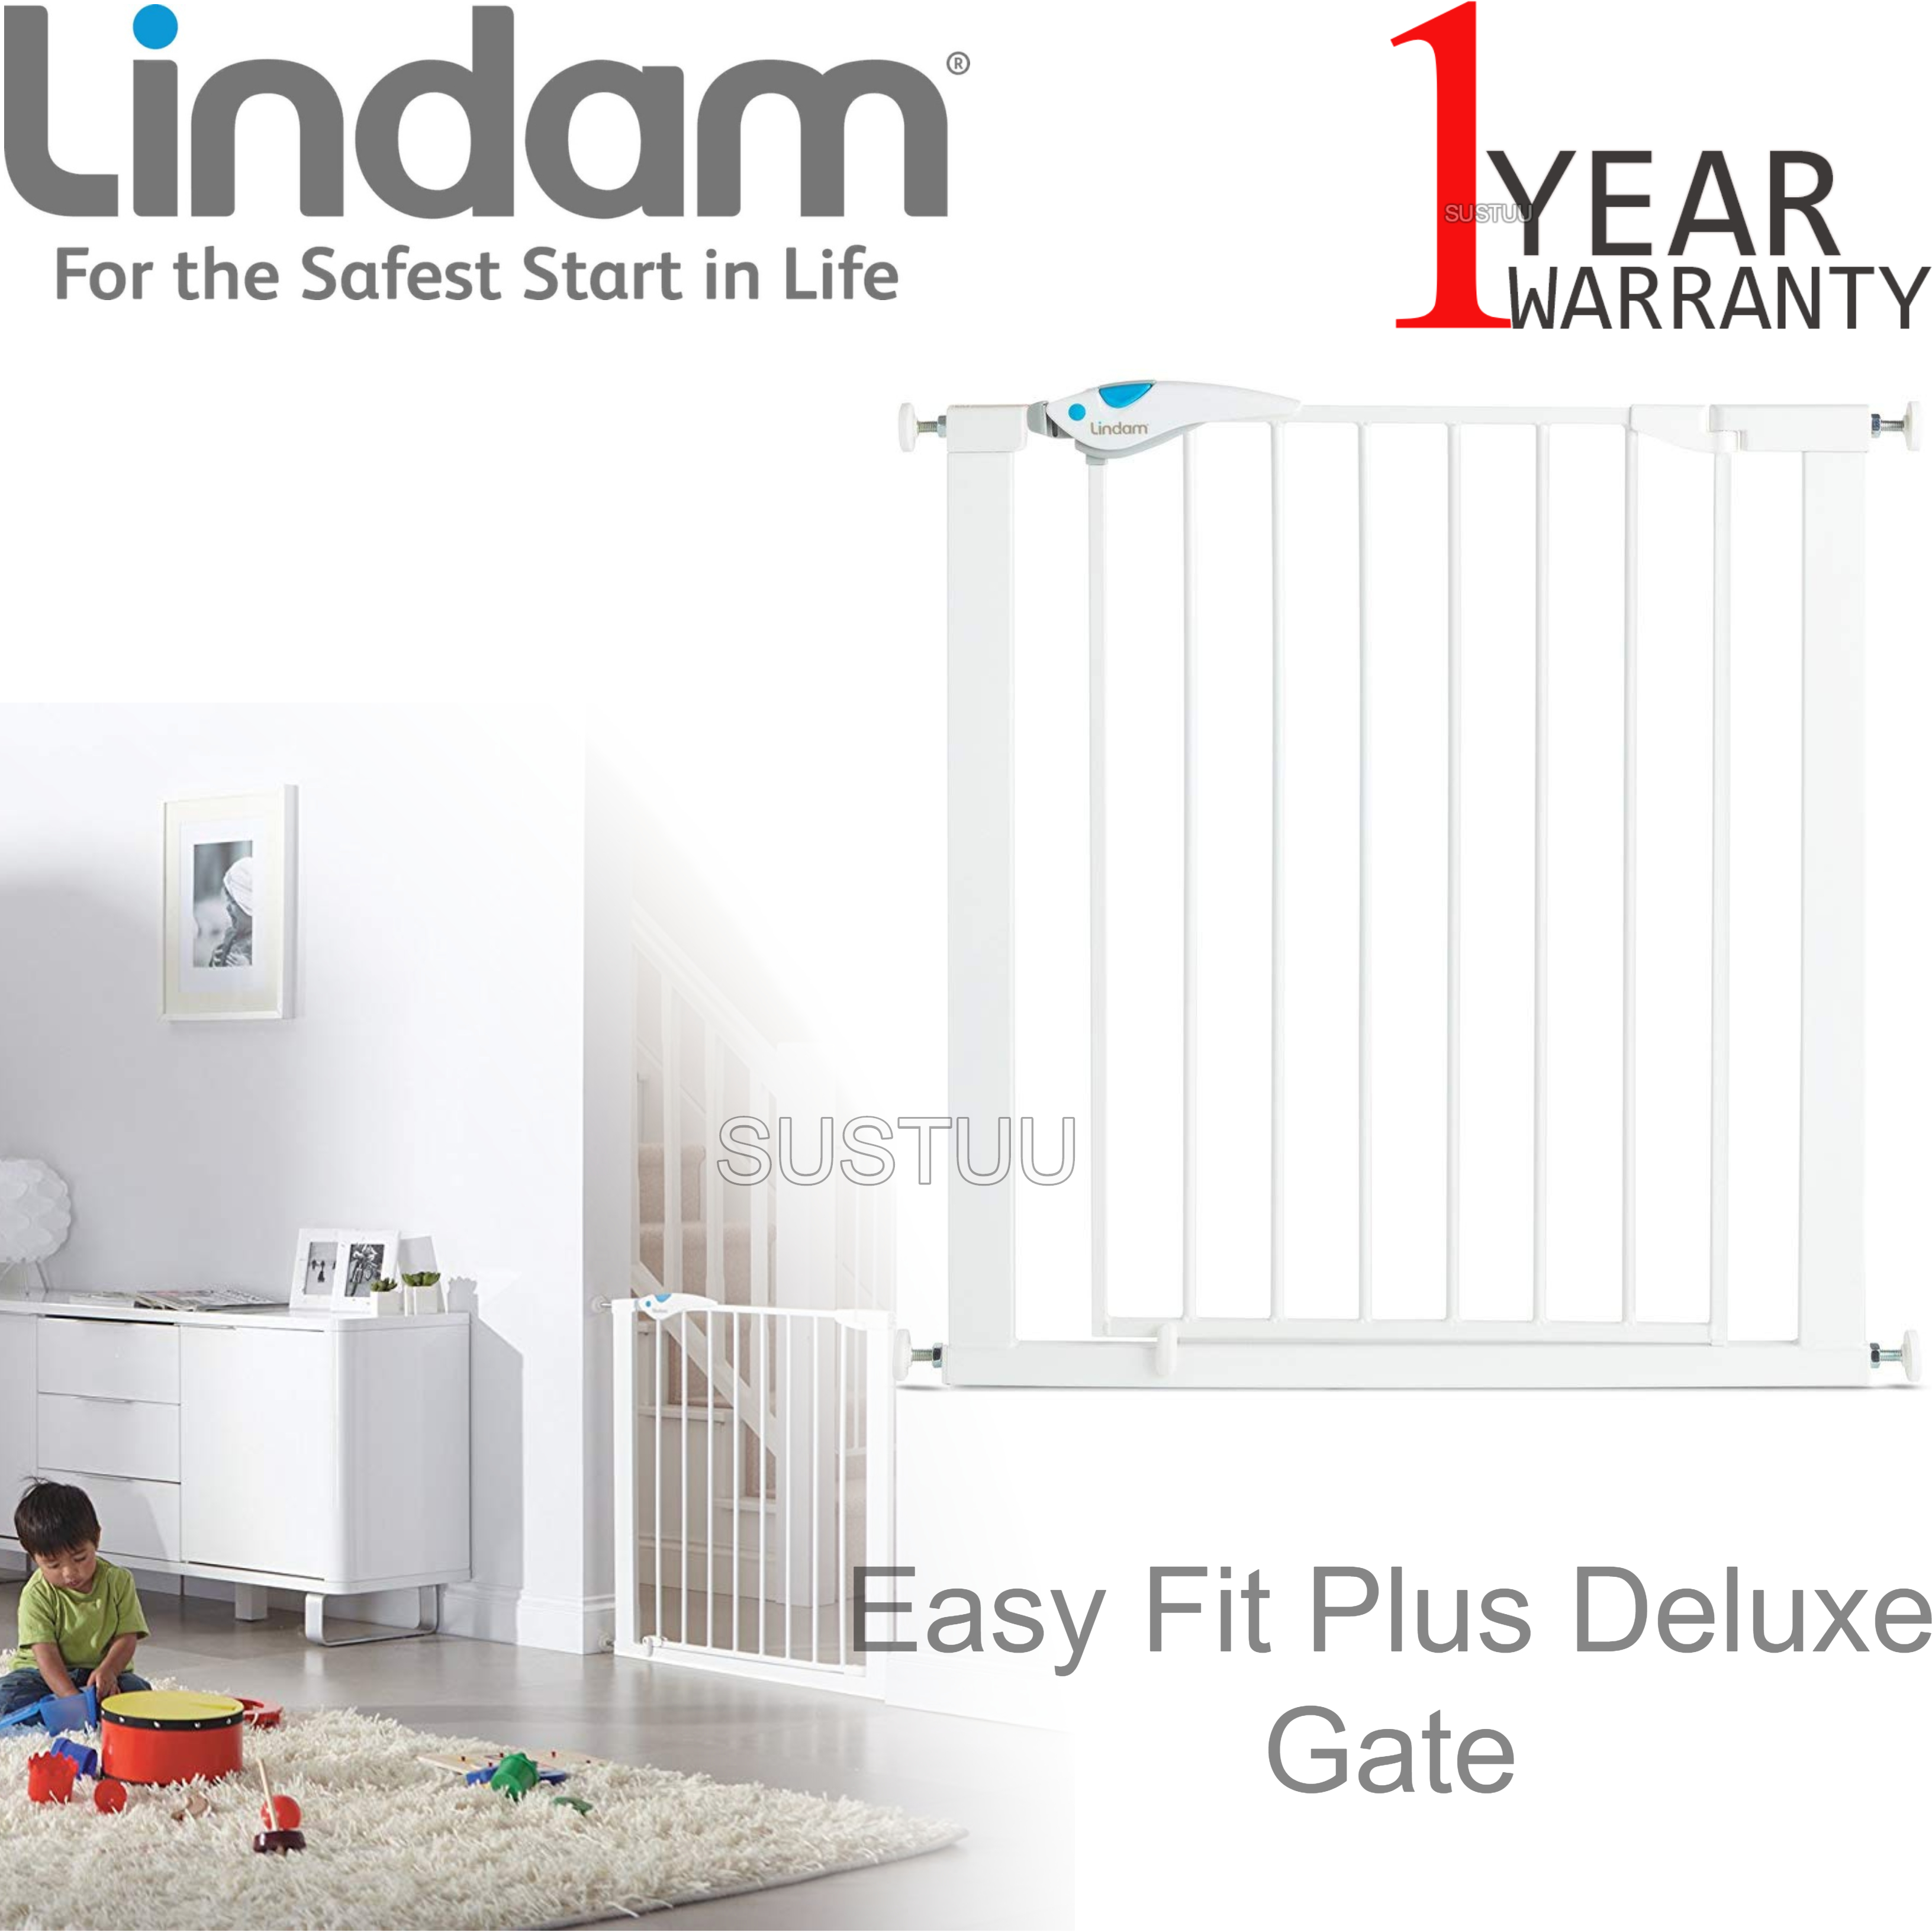 Lindam Easy Fit Plus Deluxe Pressure Safety Gate 76 82cm 2 Way